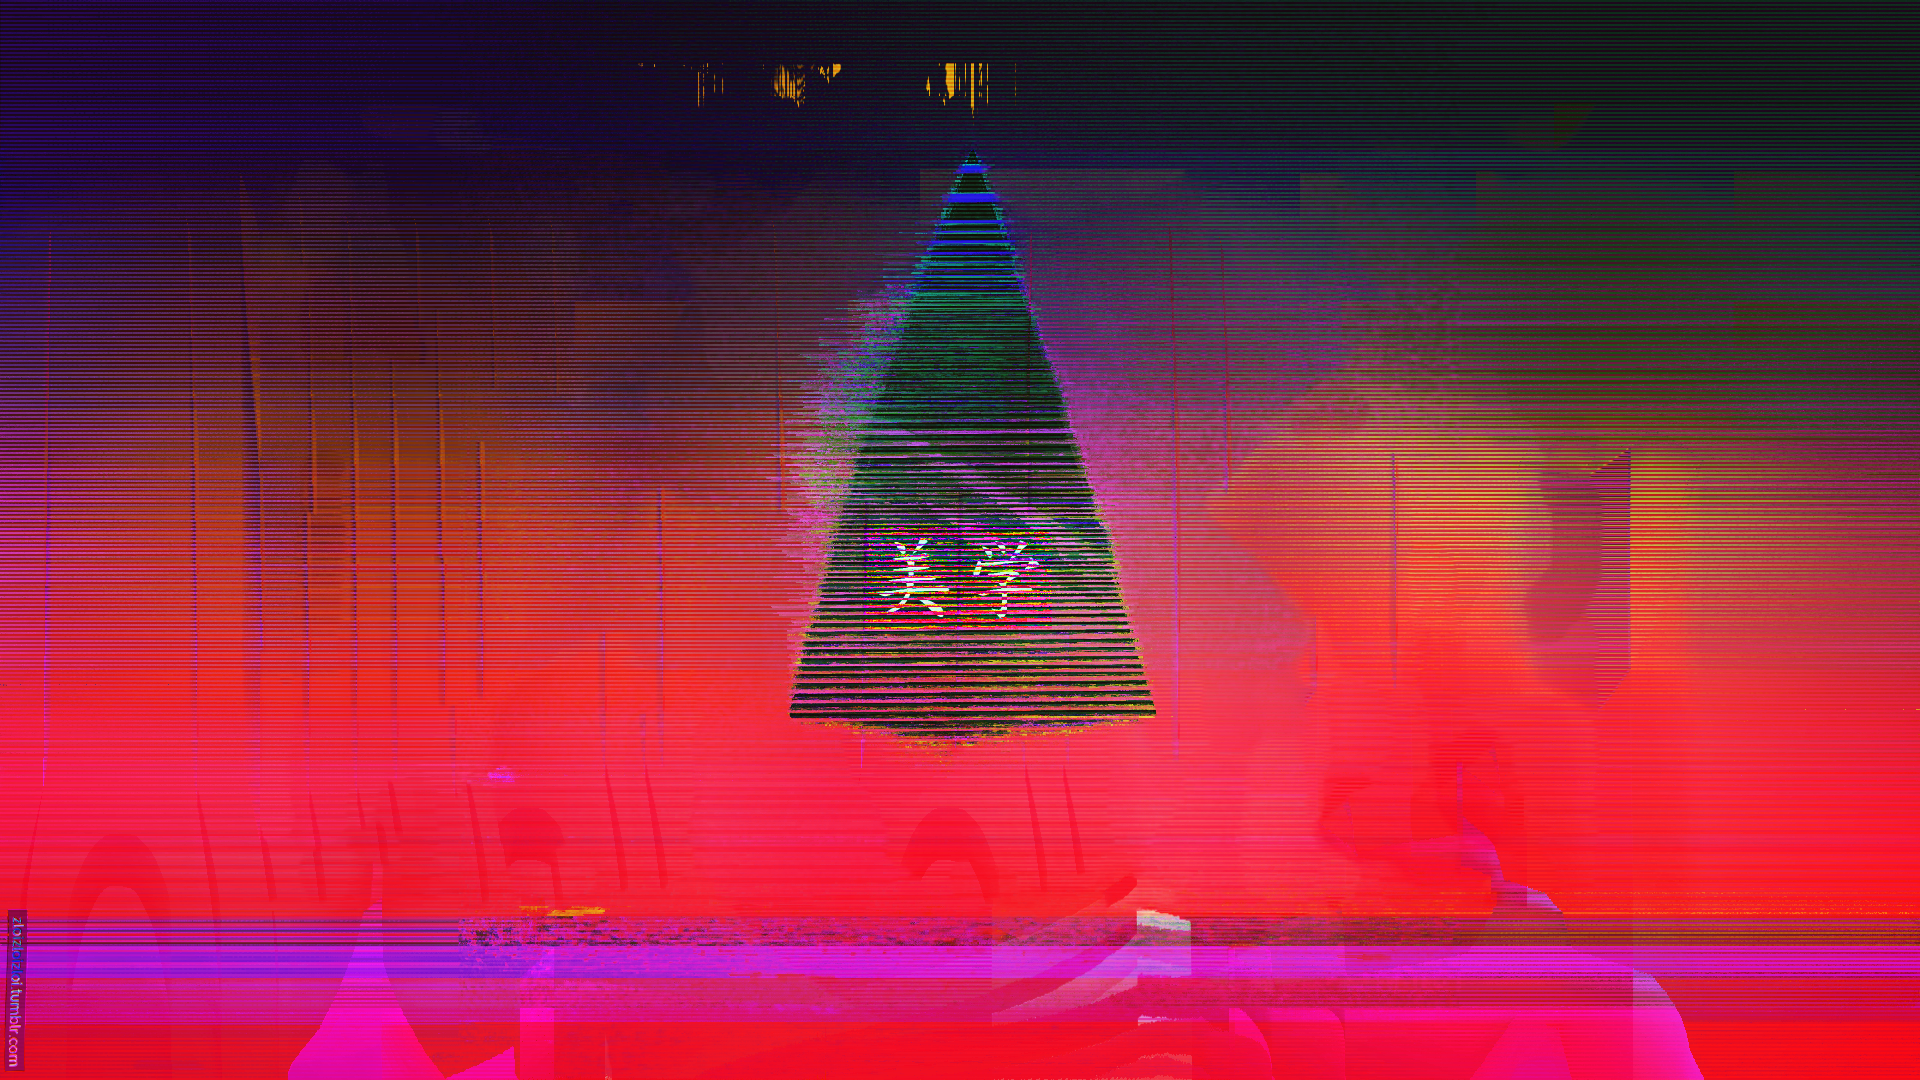 Glitch Neon Aesthetic Japan Triangle Abstract [1920x1080